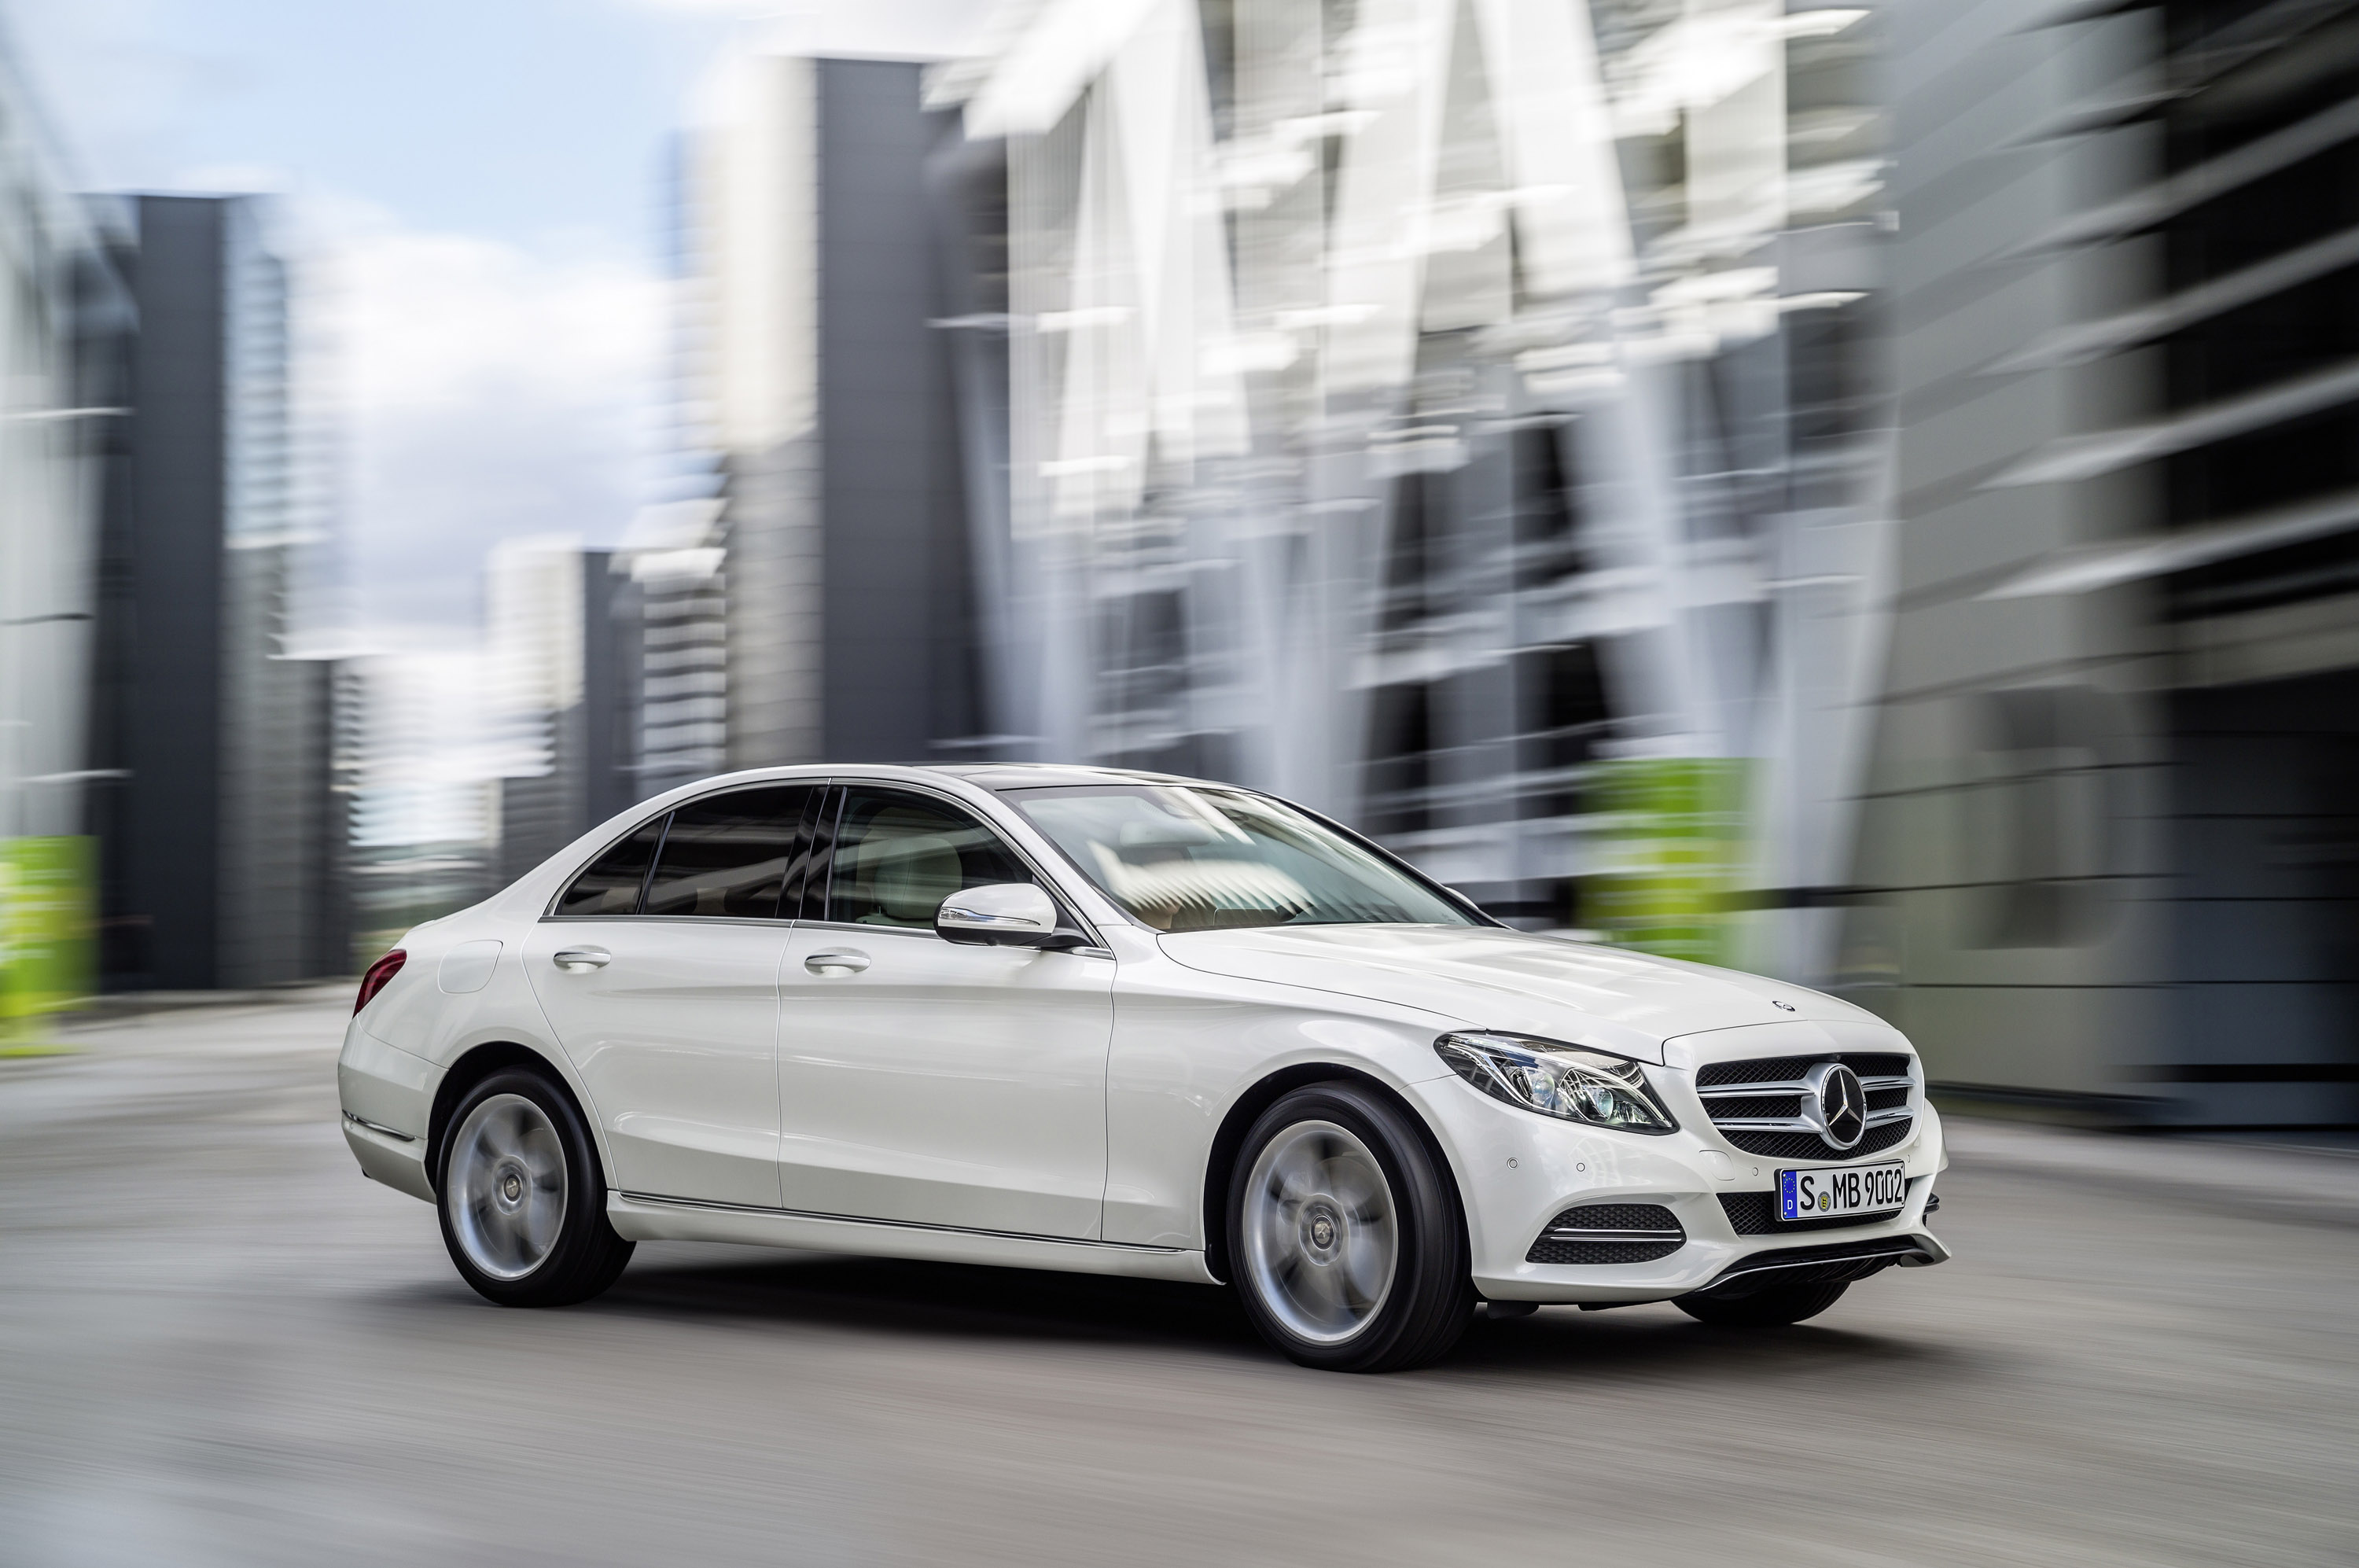 2015 mercedes benz c class sedan us pricing announced for Mercedes benz 2015 c class price